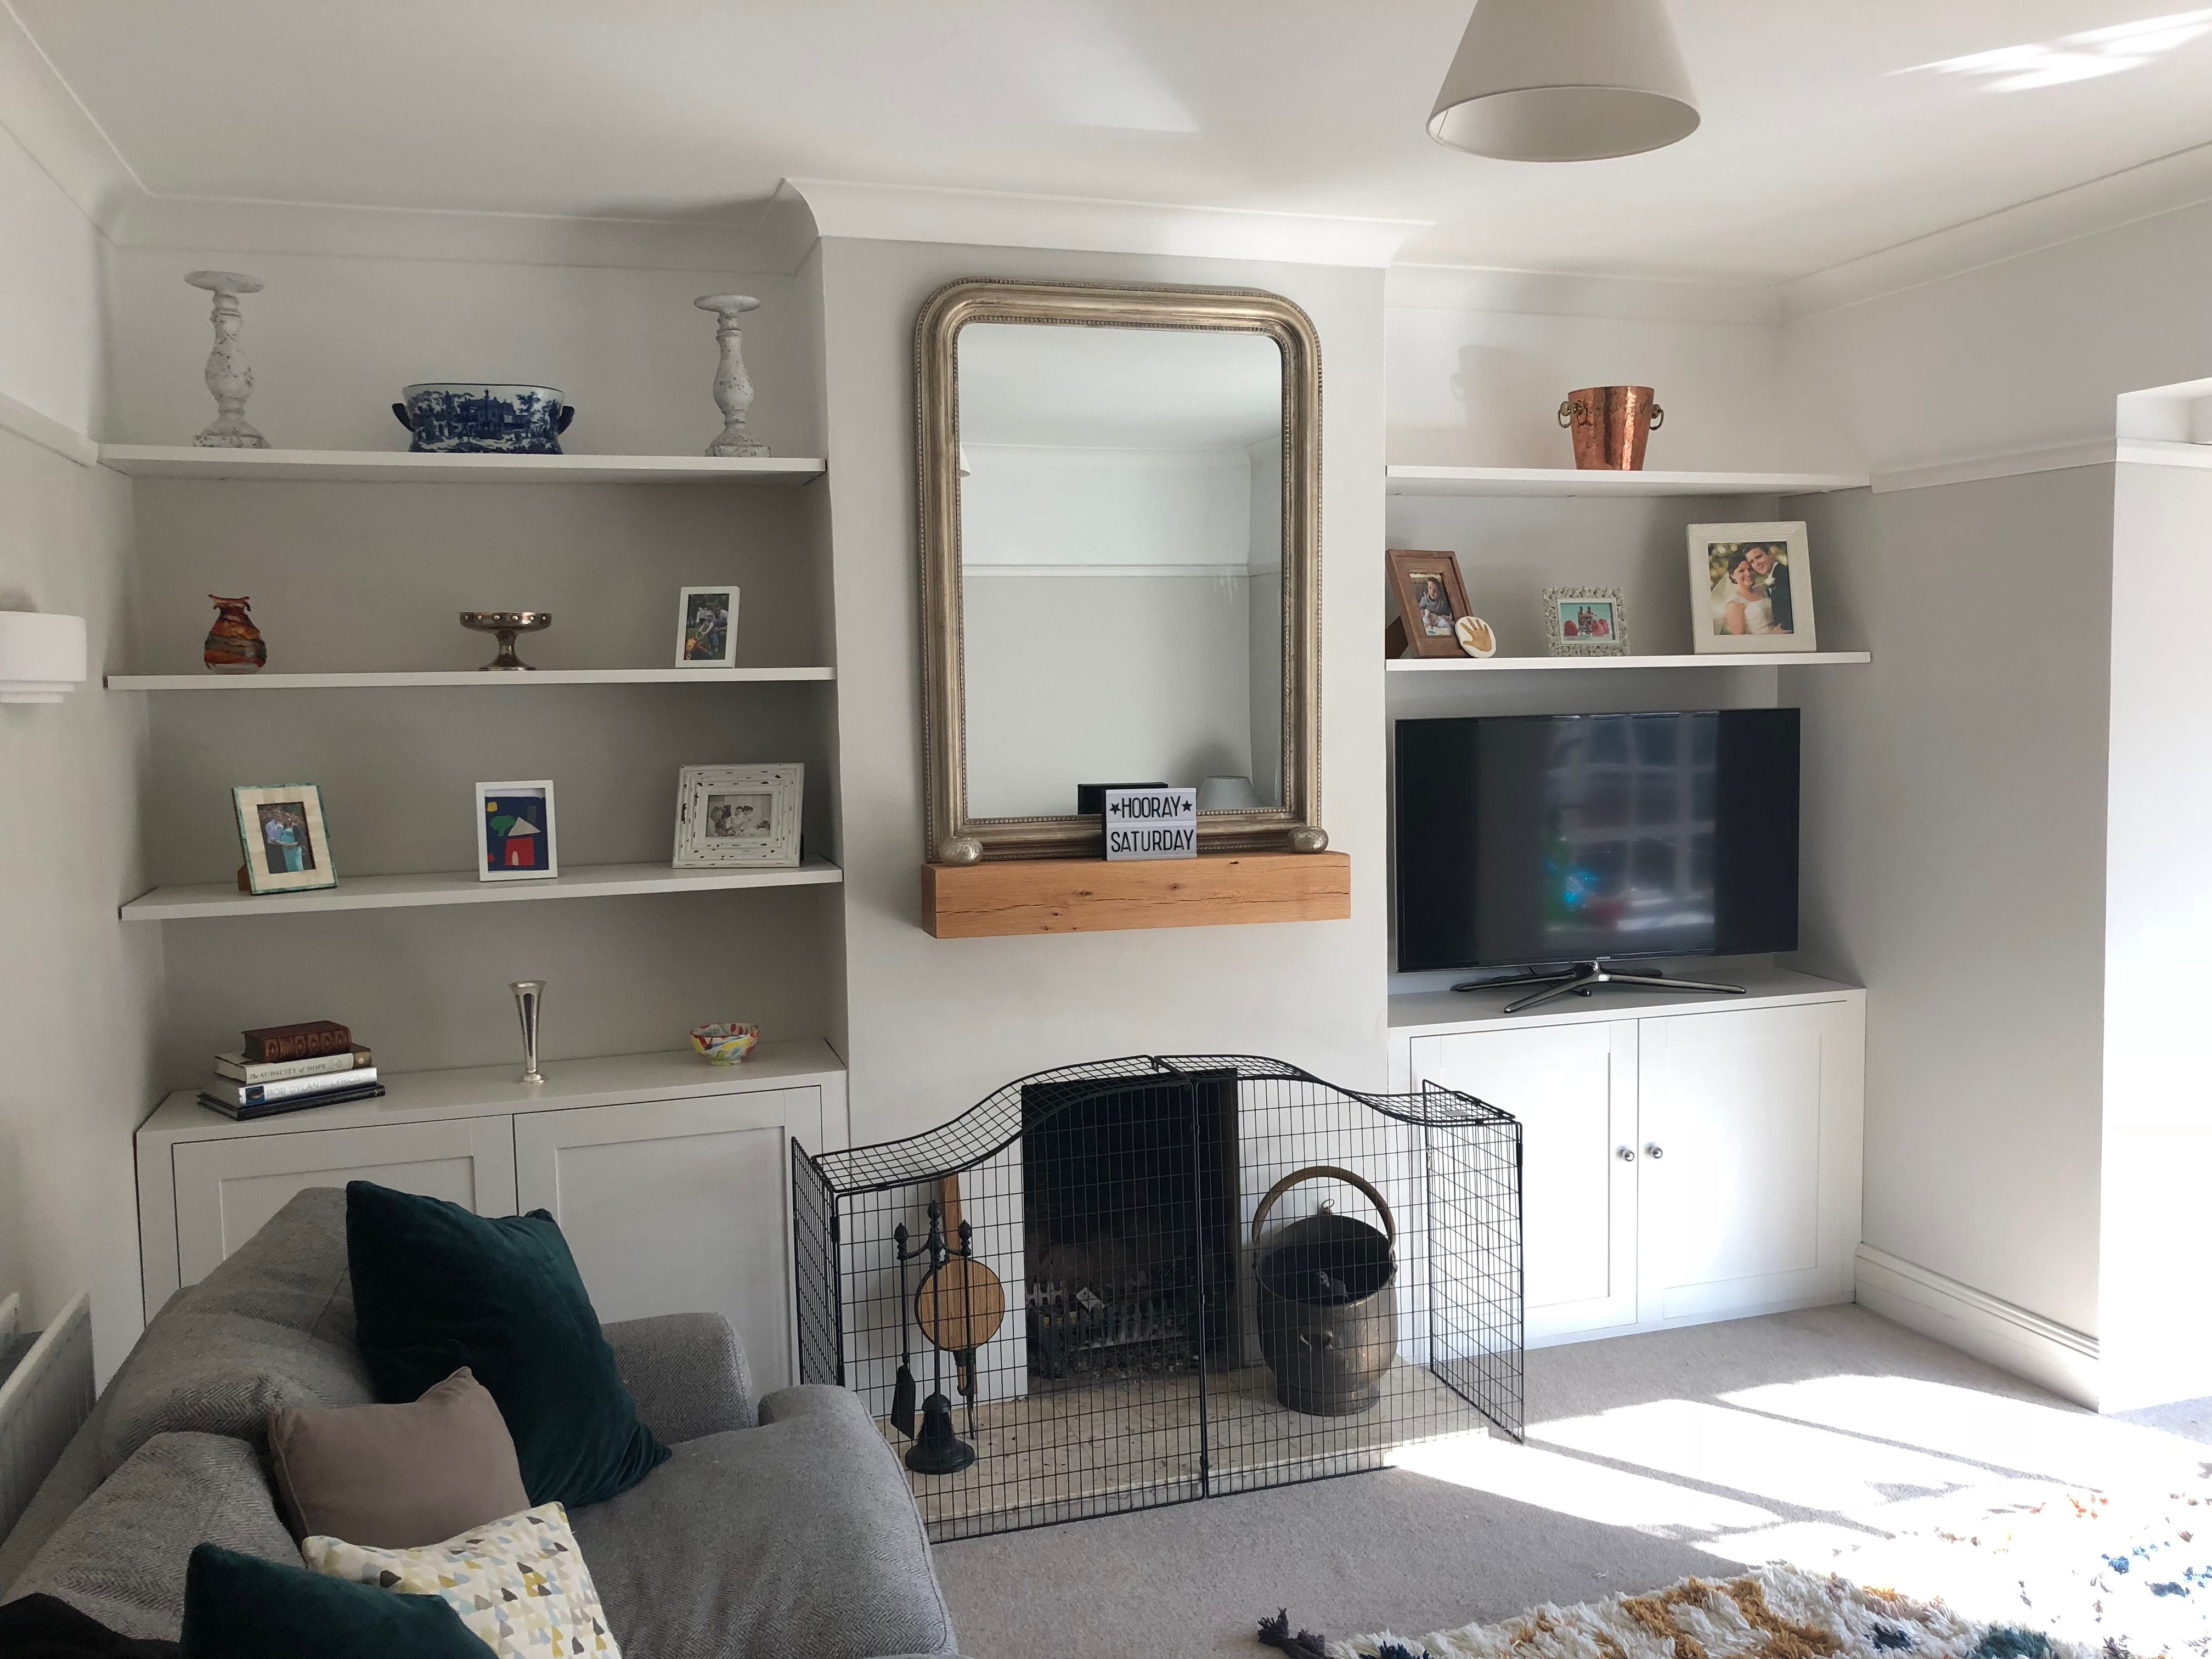 Best Ikea Hack Knoxhult Kitchen Wall Unit Turned Built In 400 x 300